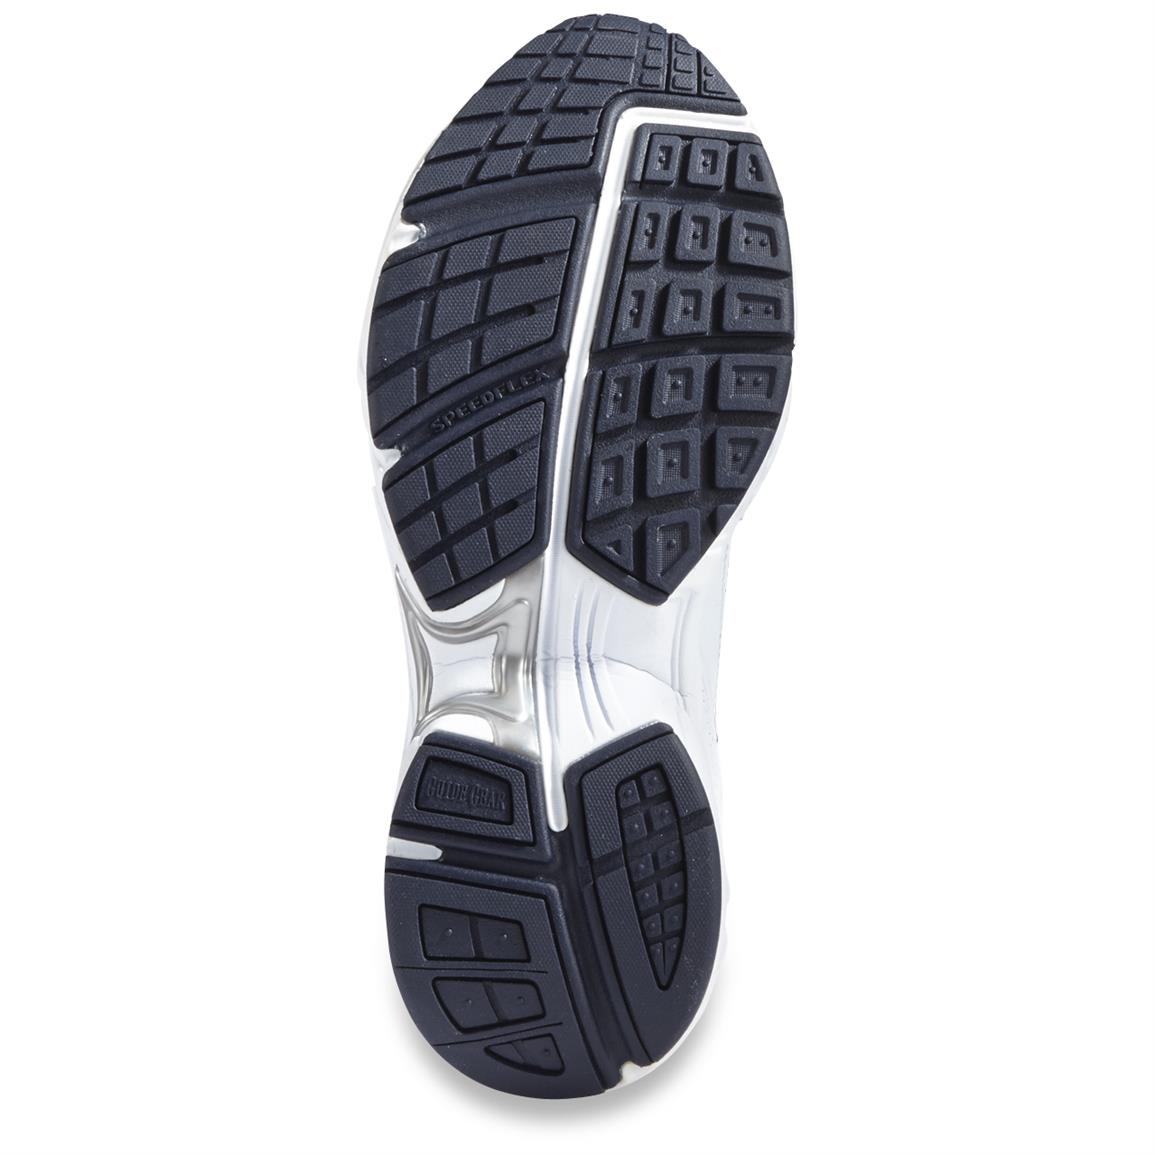 Shock-absorbing midsole provides comfort